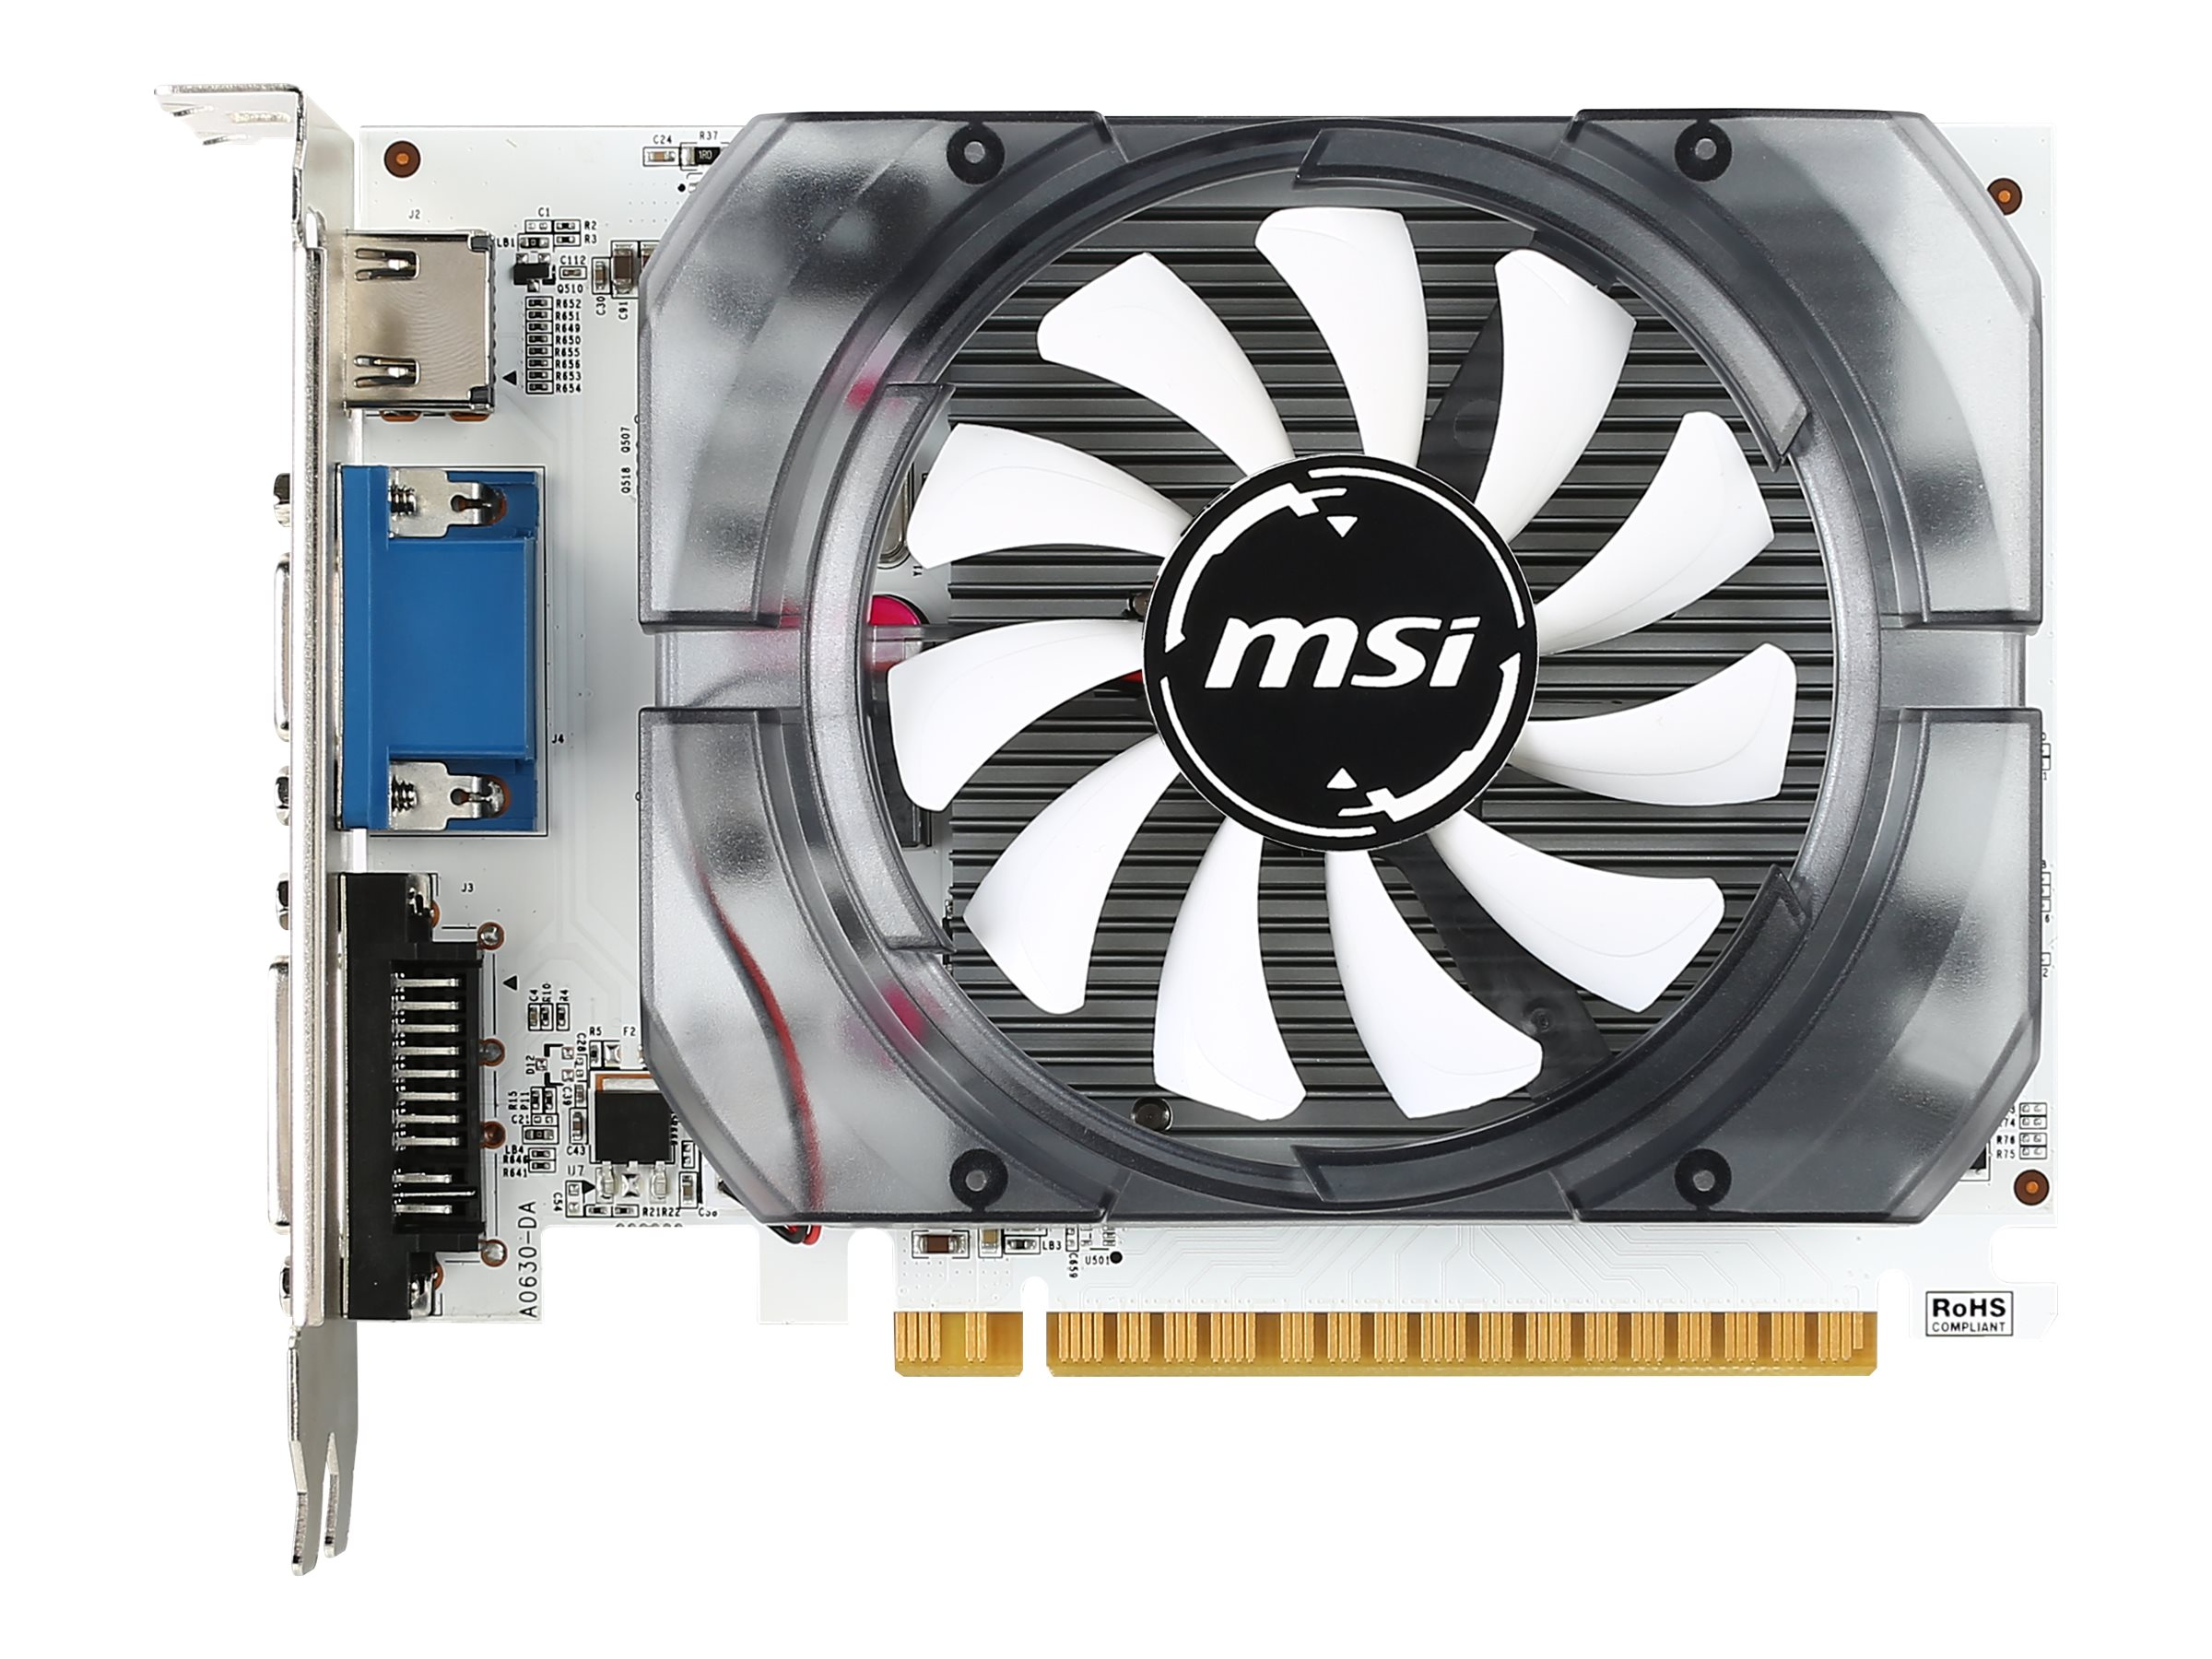 Microstar NVIDIA GeForce GT 730 PCIe 2.0 x16 Graphics Card, 4GB DDR3